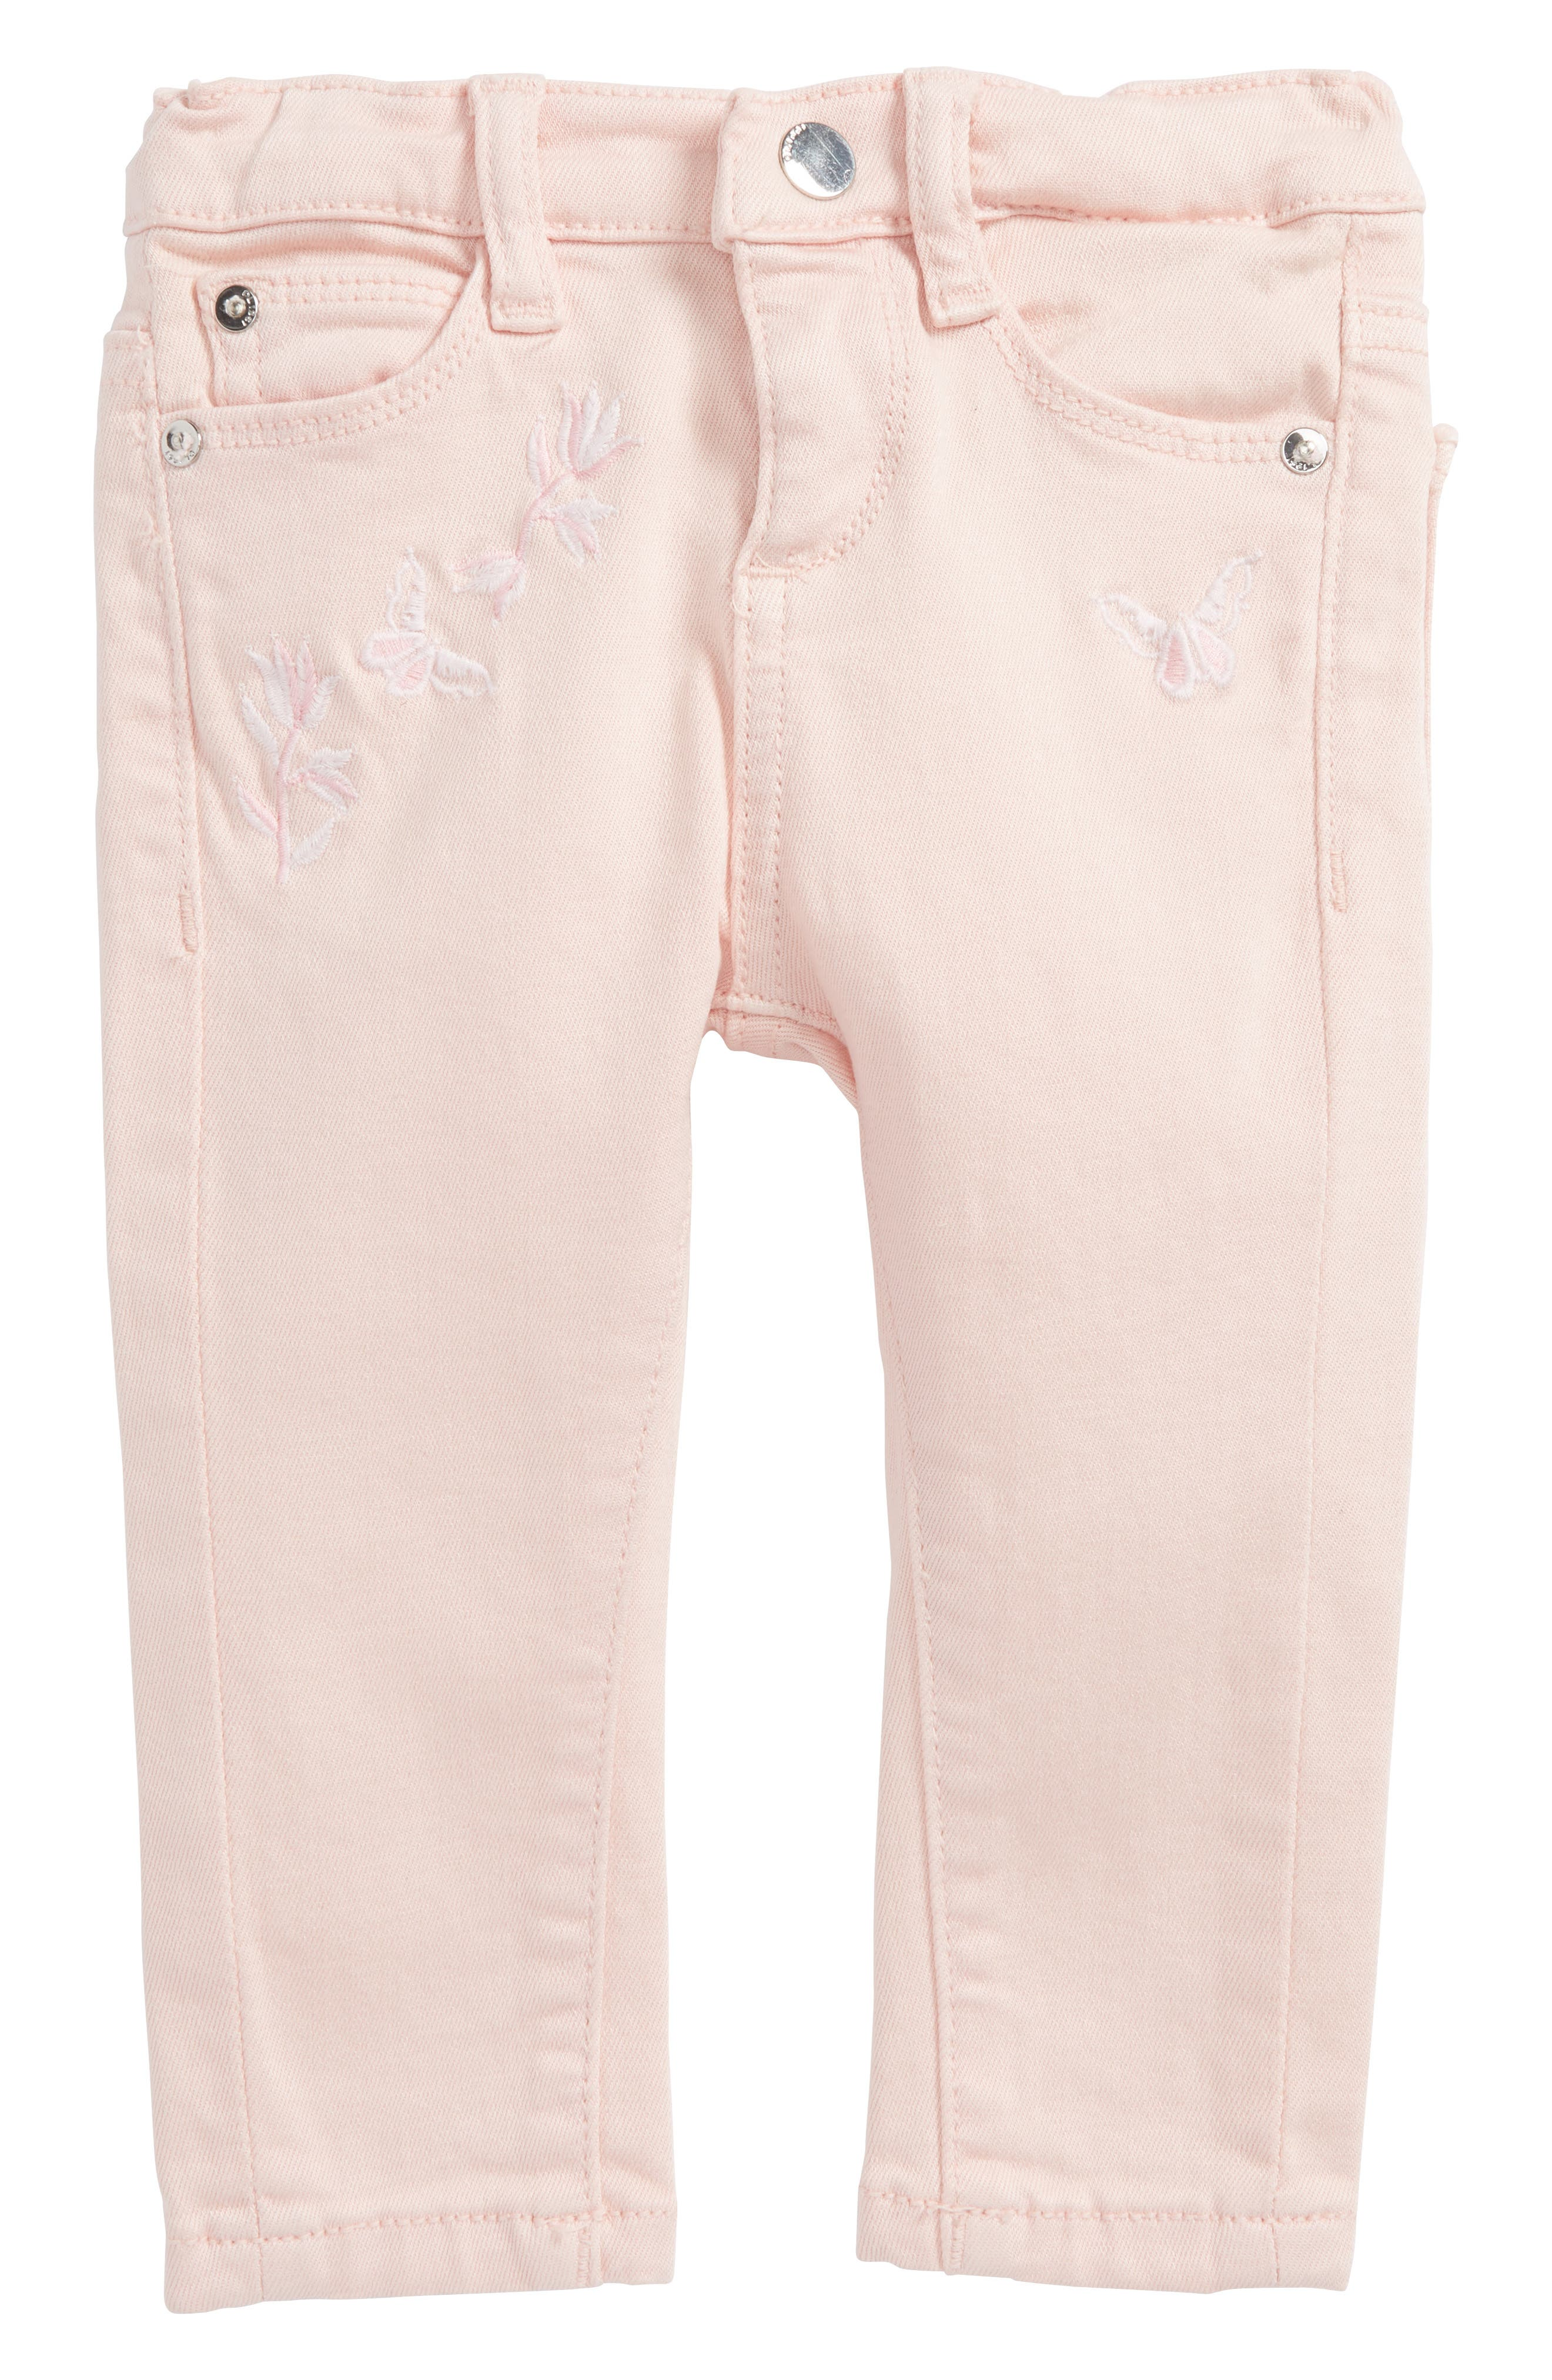 Sophie Embroidered Slim Fit Jeans,                             Main thumbnail 1, color,                             651